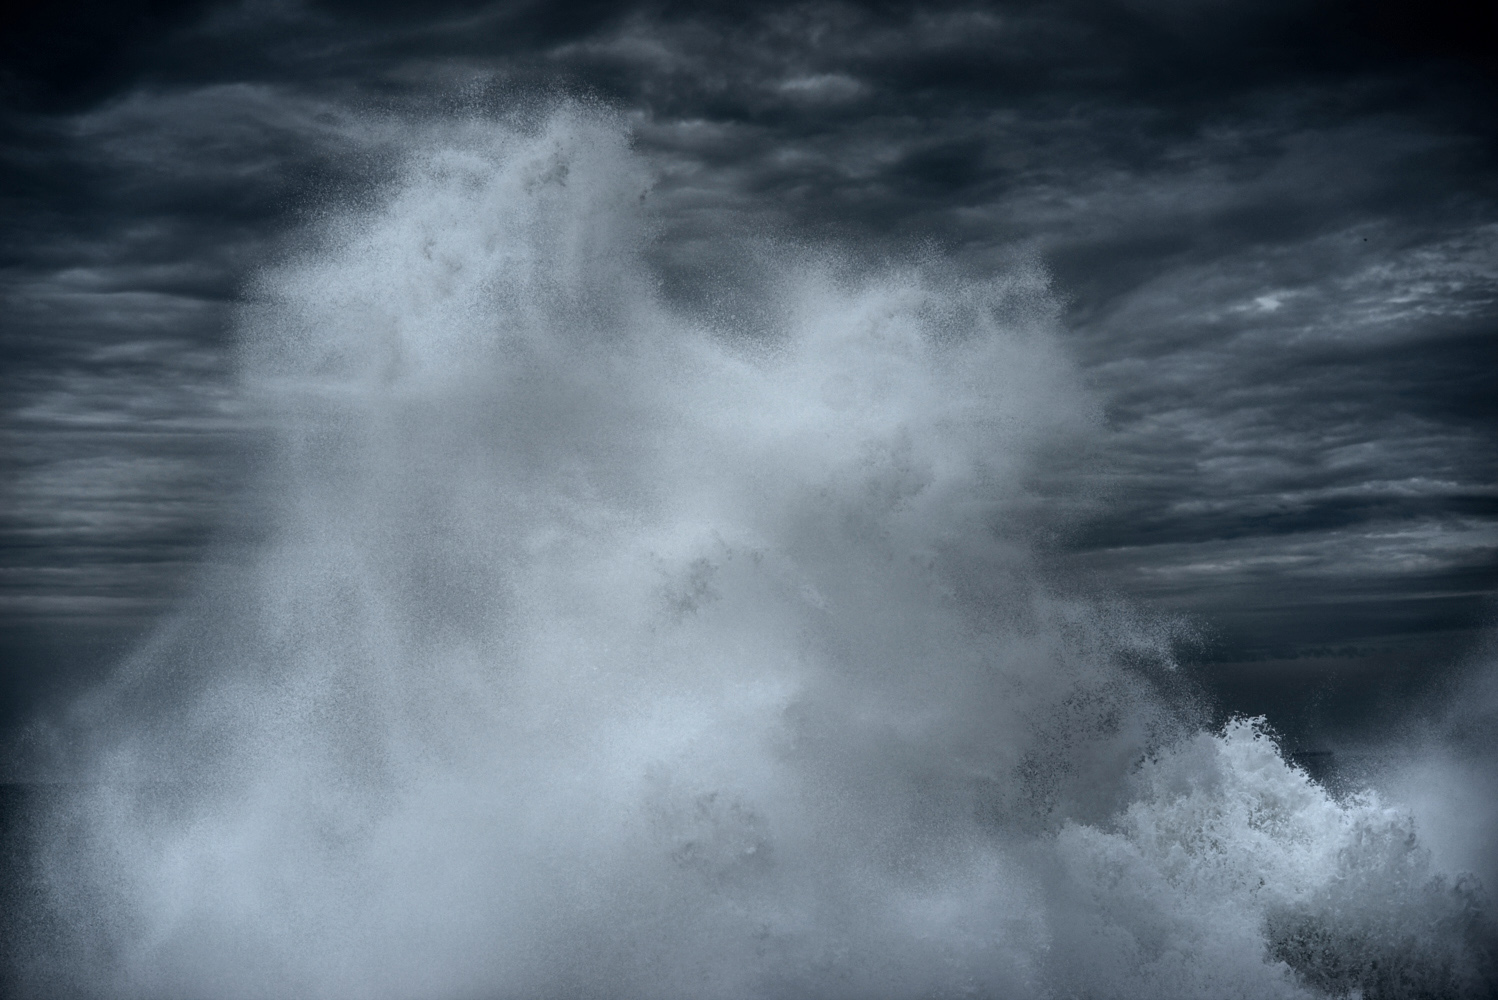 Abstract fine art image of a wave breaking on a rock on the Atlantic ocean